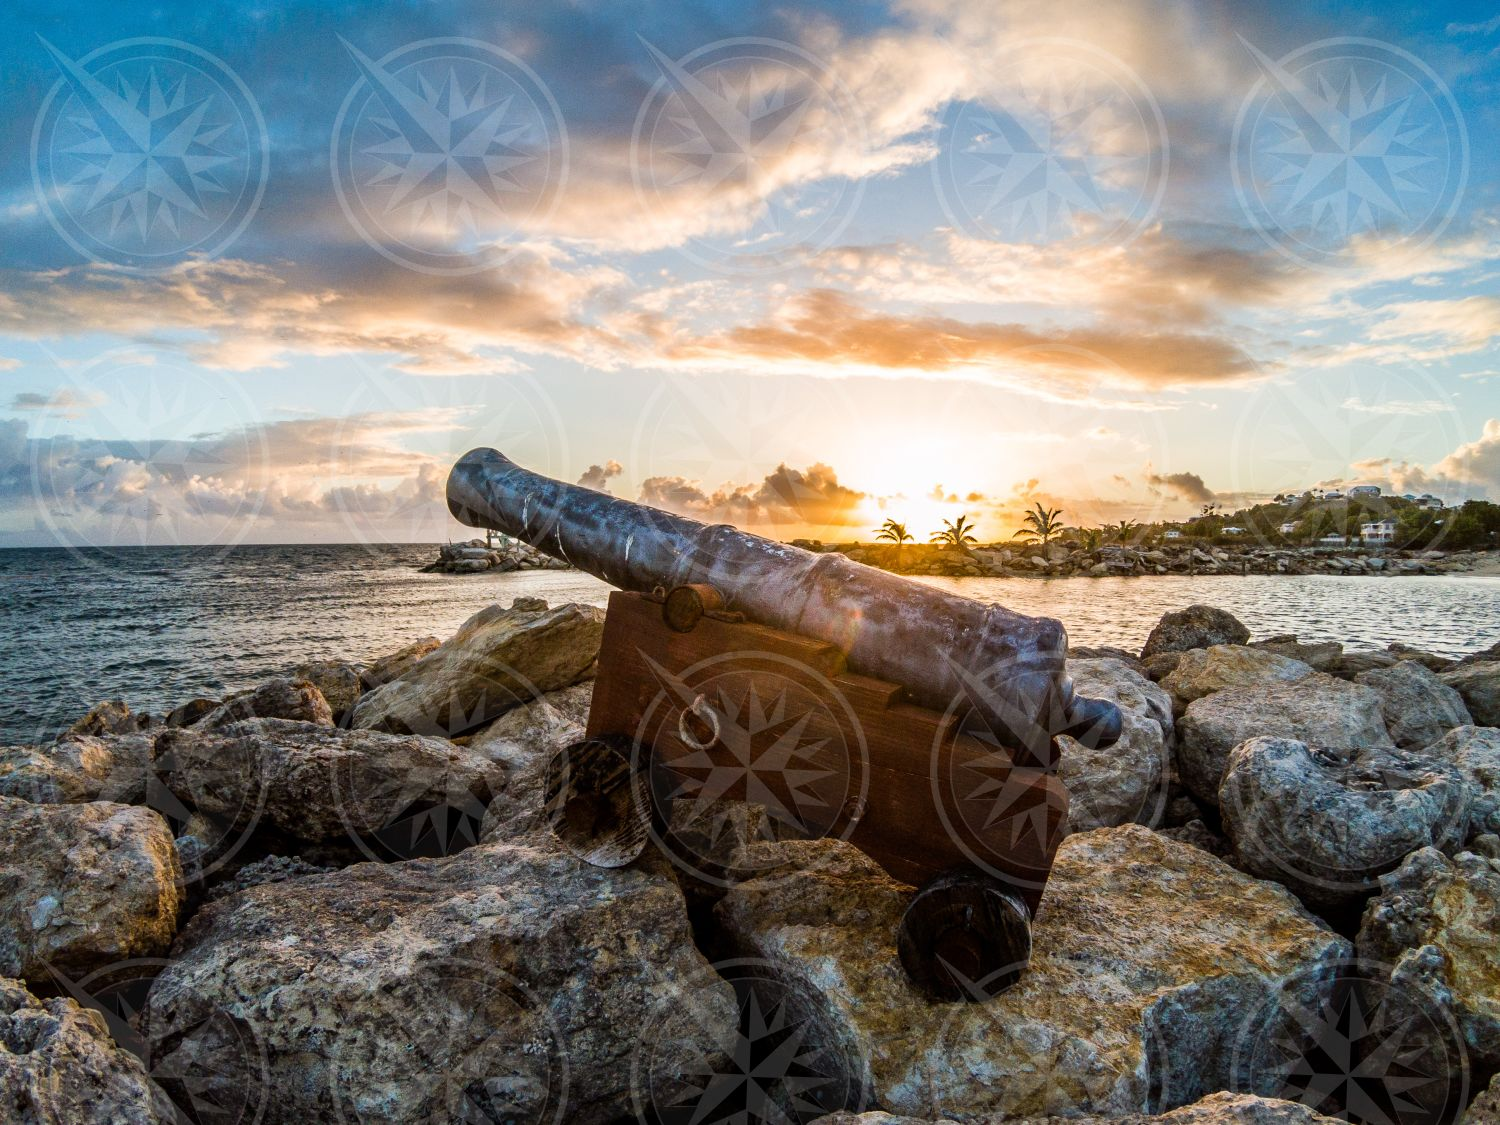 Ocean Point Resort and Spa cannon